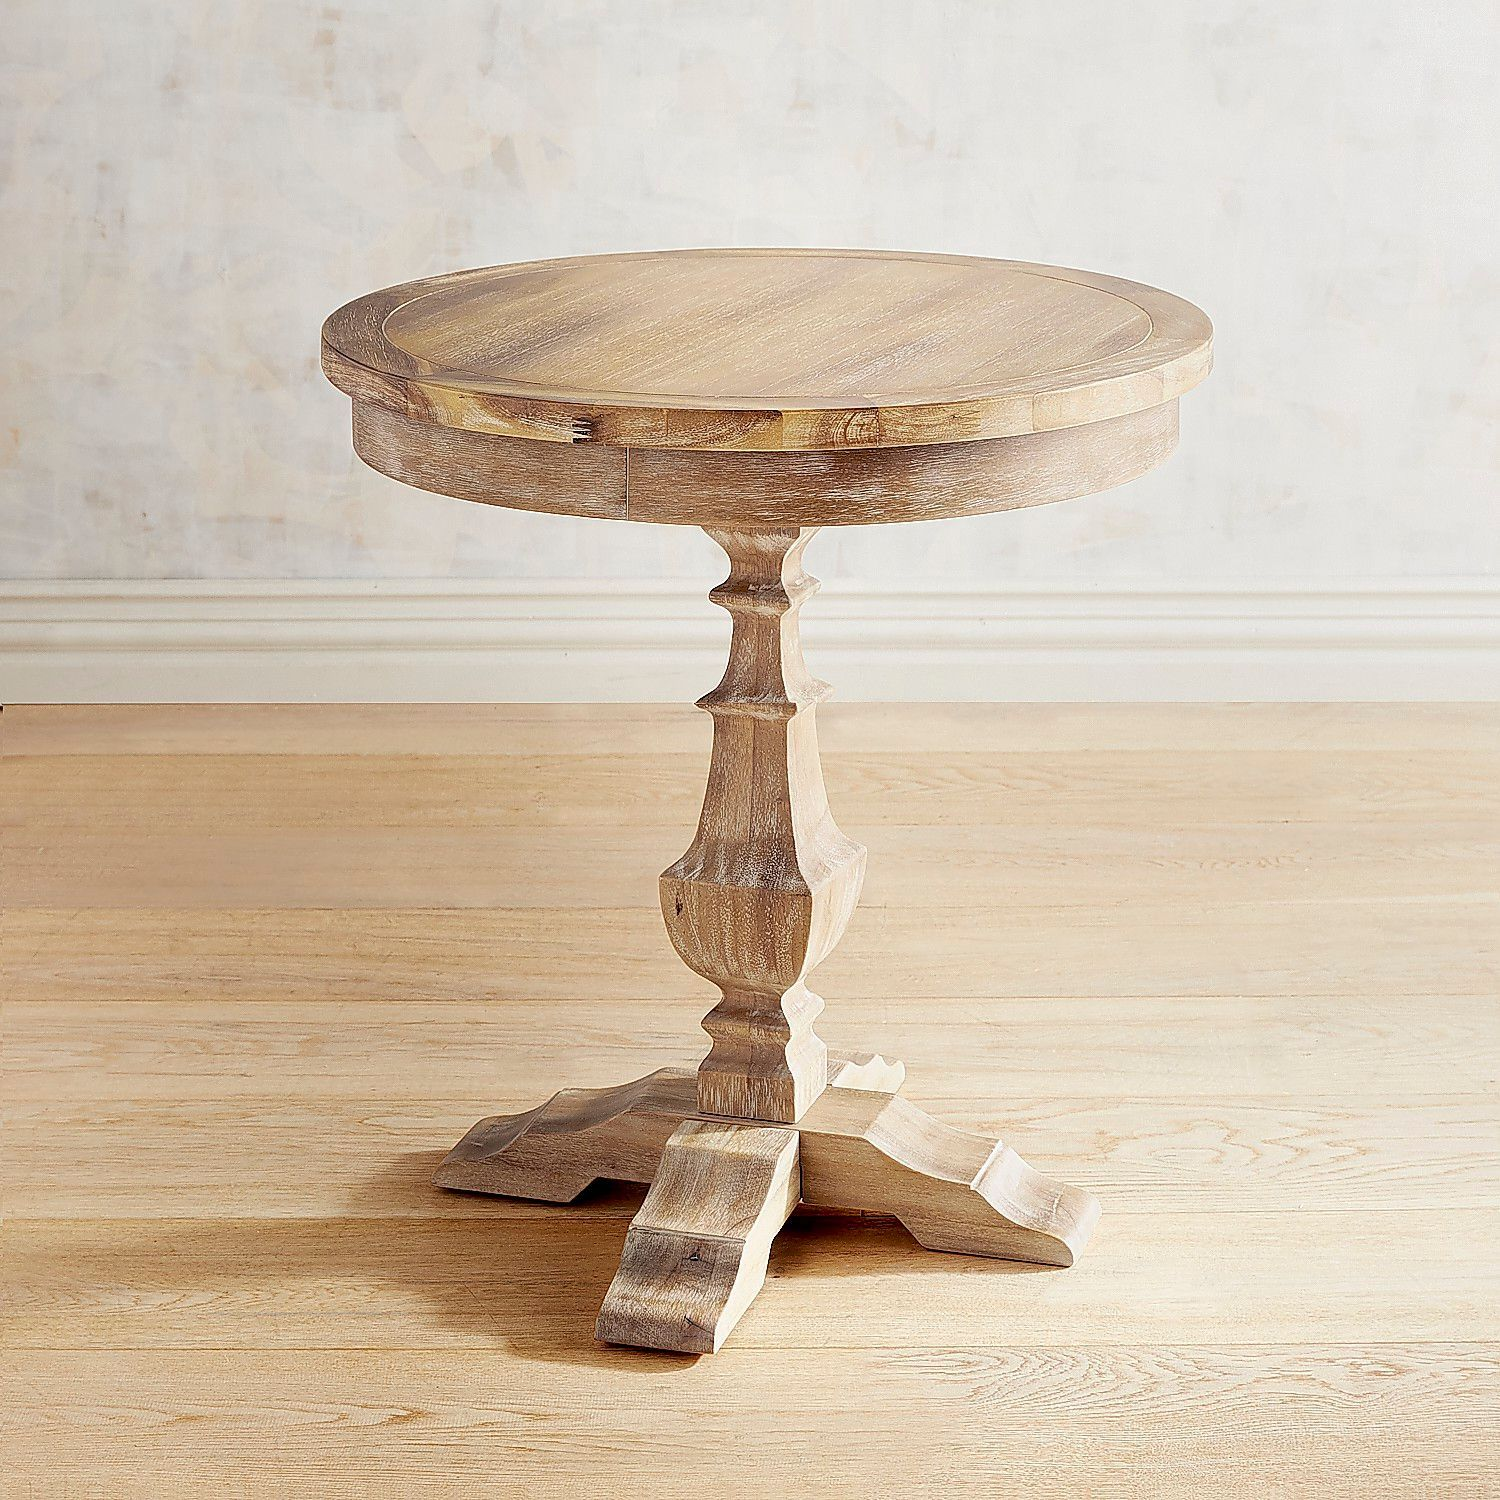 Bradding Round End Table Pier 1 Imports End Tables Farmhouse End Tables Side Table [ 1500 x 1500 Pixel ]